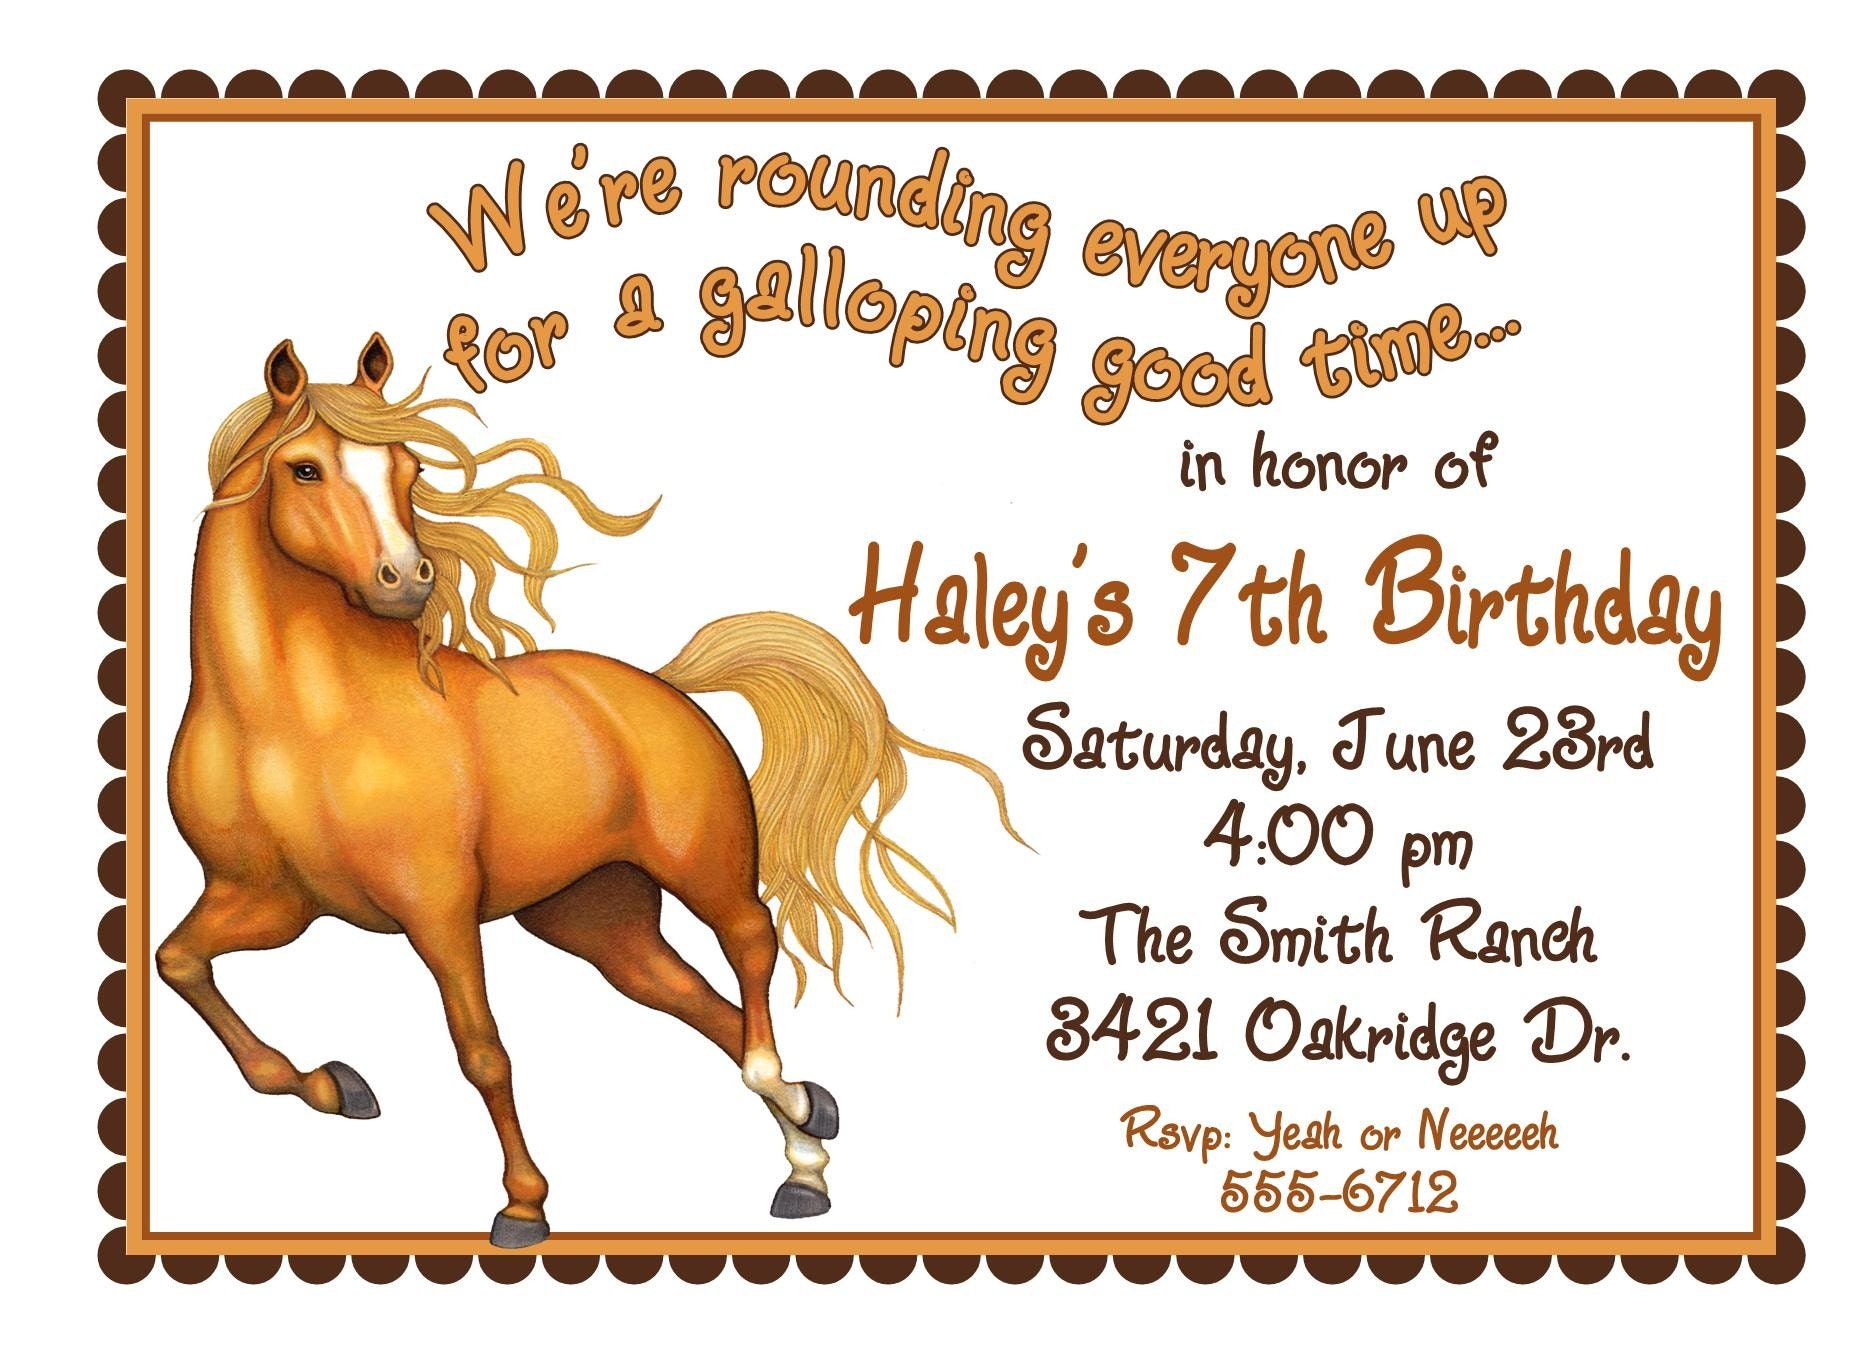 Horse Birthday Party Invitations is one of our best ideas you might choose for invitation design